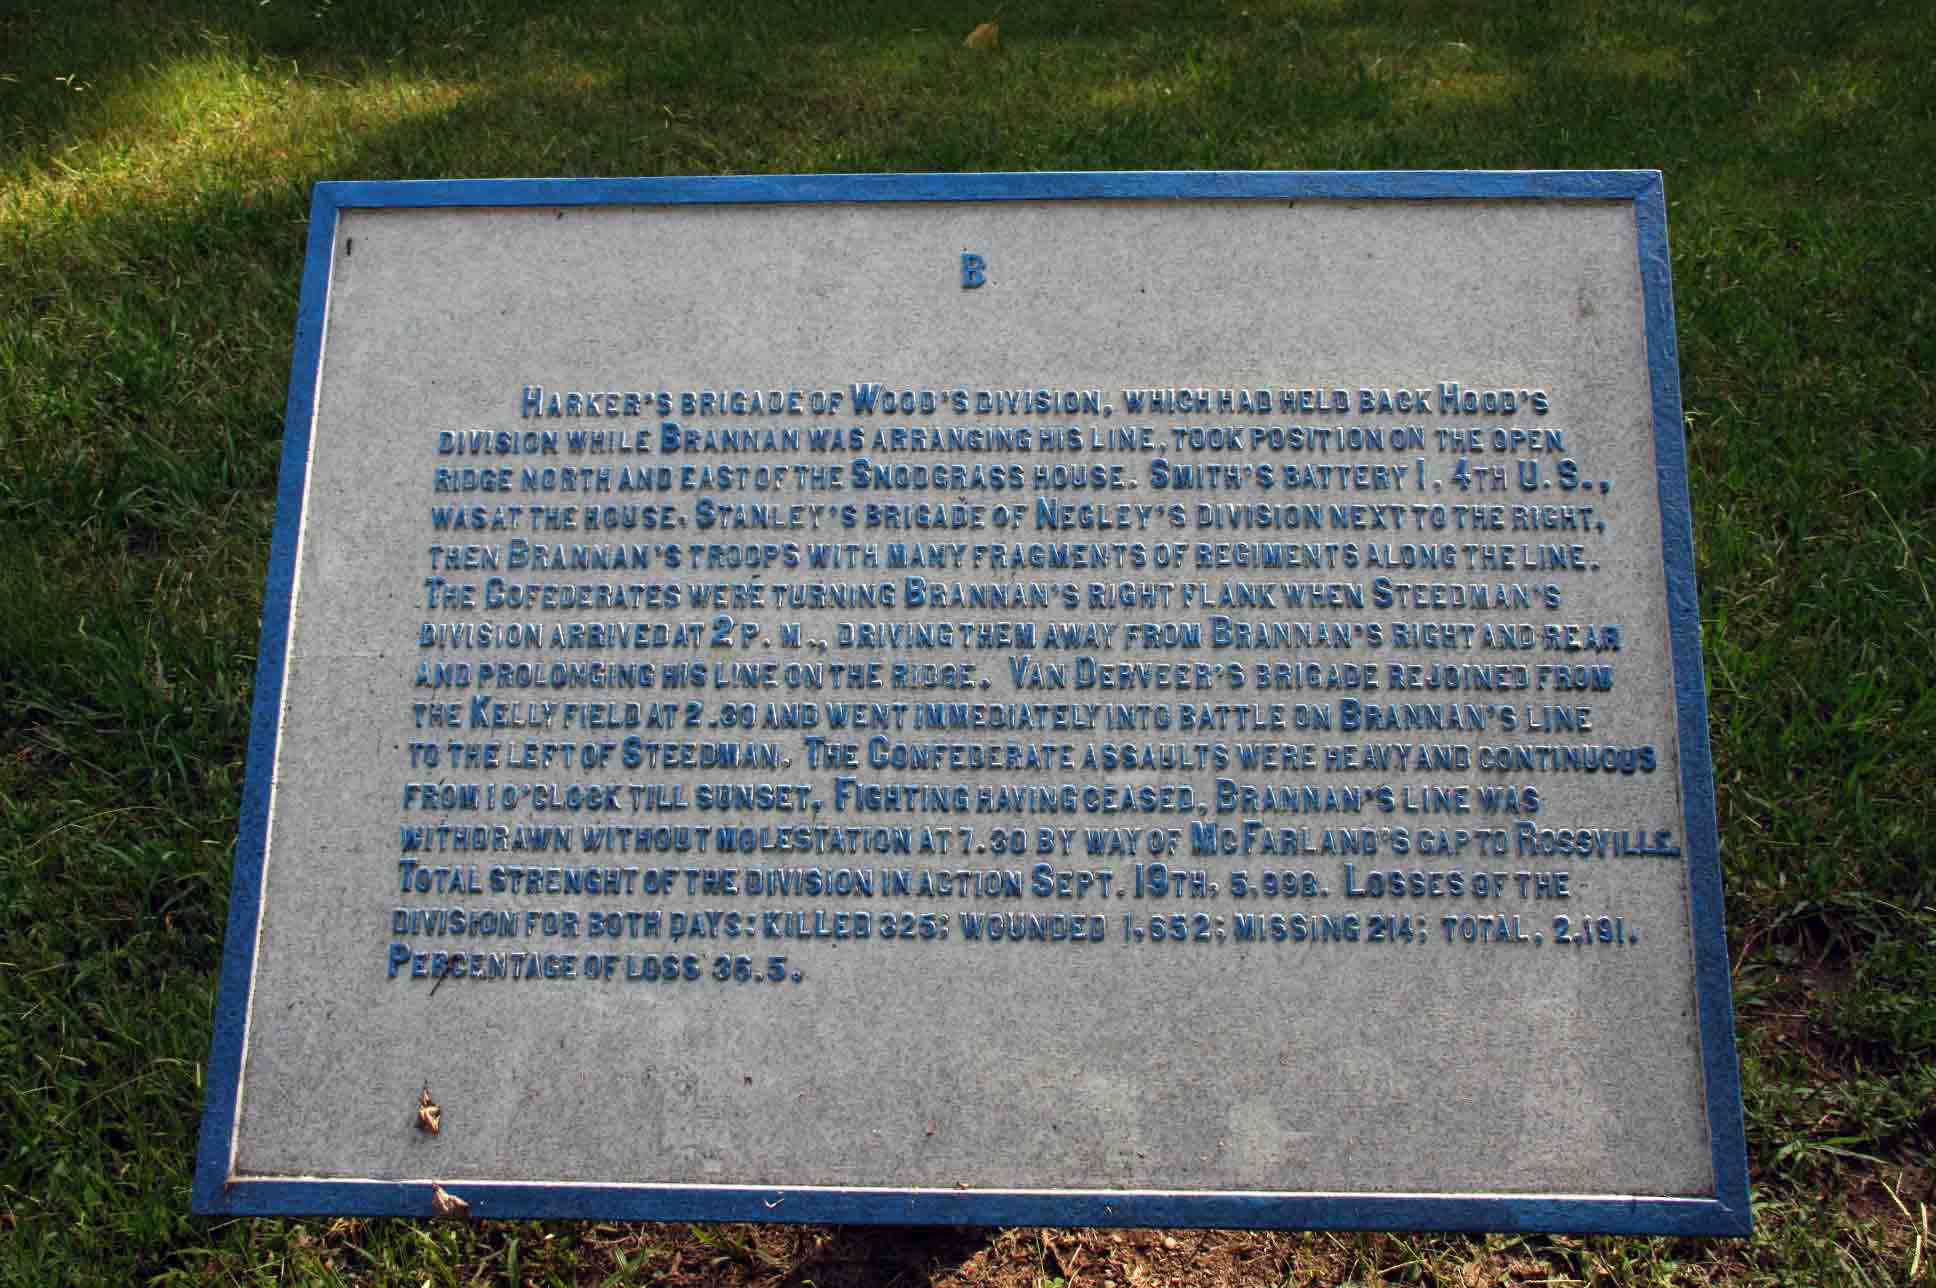 Brannan's Division Tablet, click photo to enlarge.